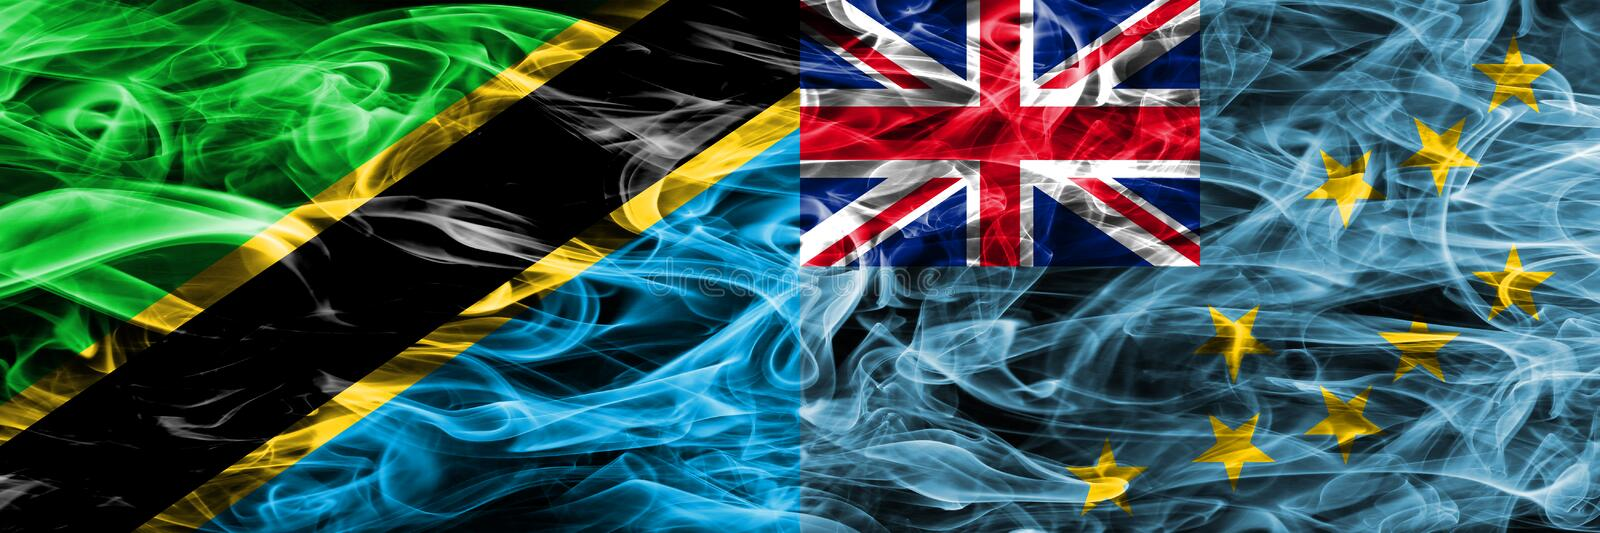 Tanzania vs Tuvalu, Tuvaluan smoke flags placed side by side. Thick colored silky smoke flags of Tanzanian and Tuvalu, Tuvaluan.  royalty free stock images